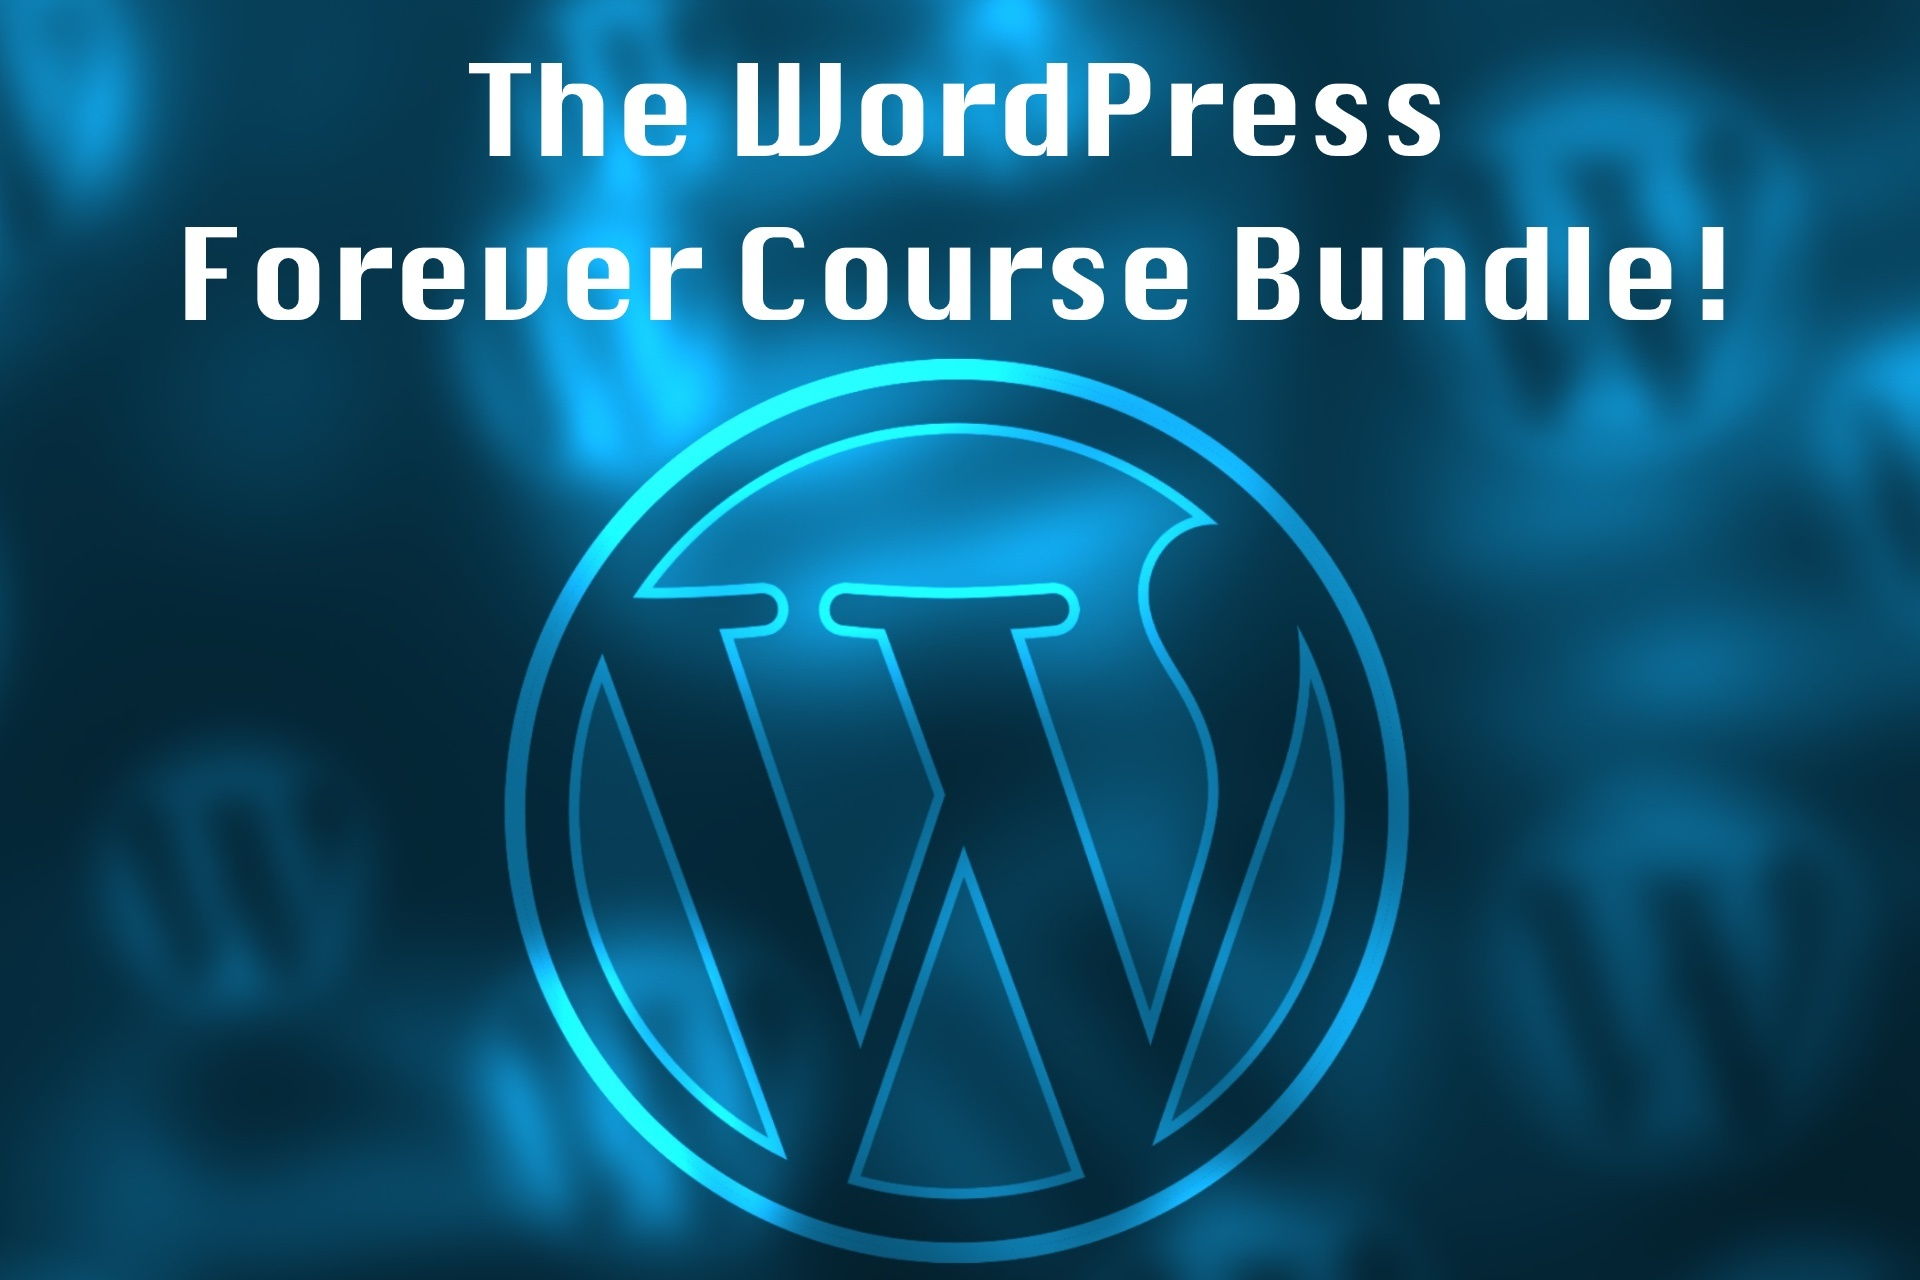 The WordPress Forever Course Bundle!